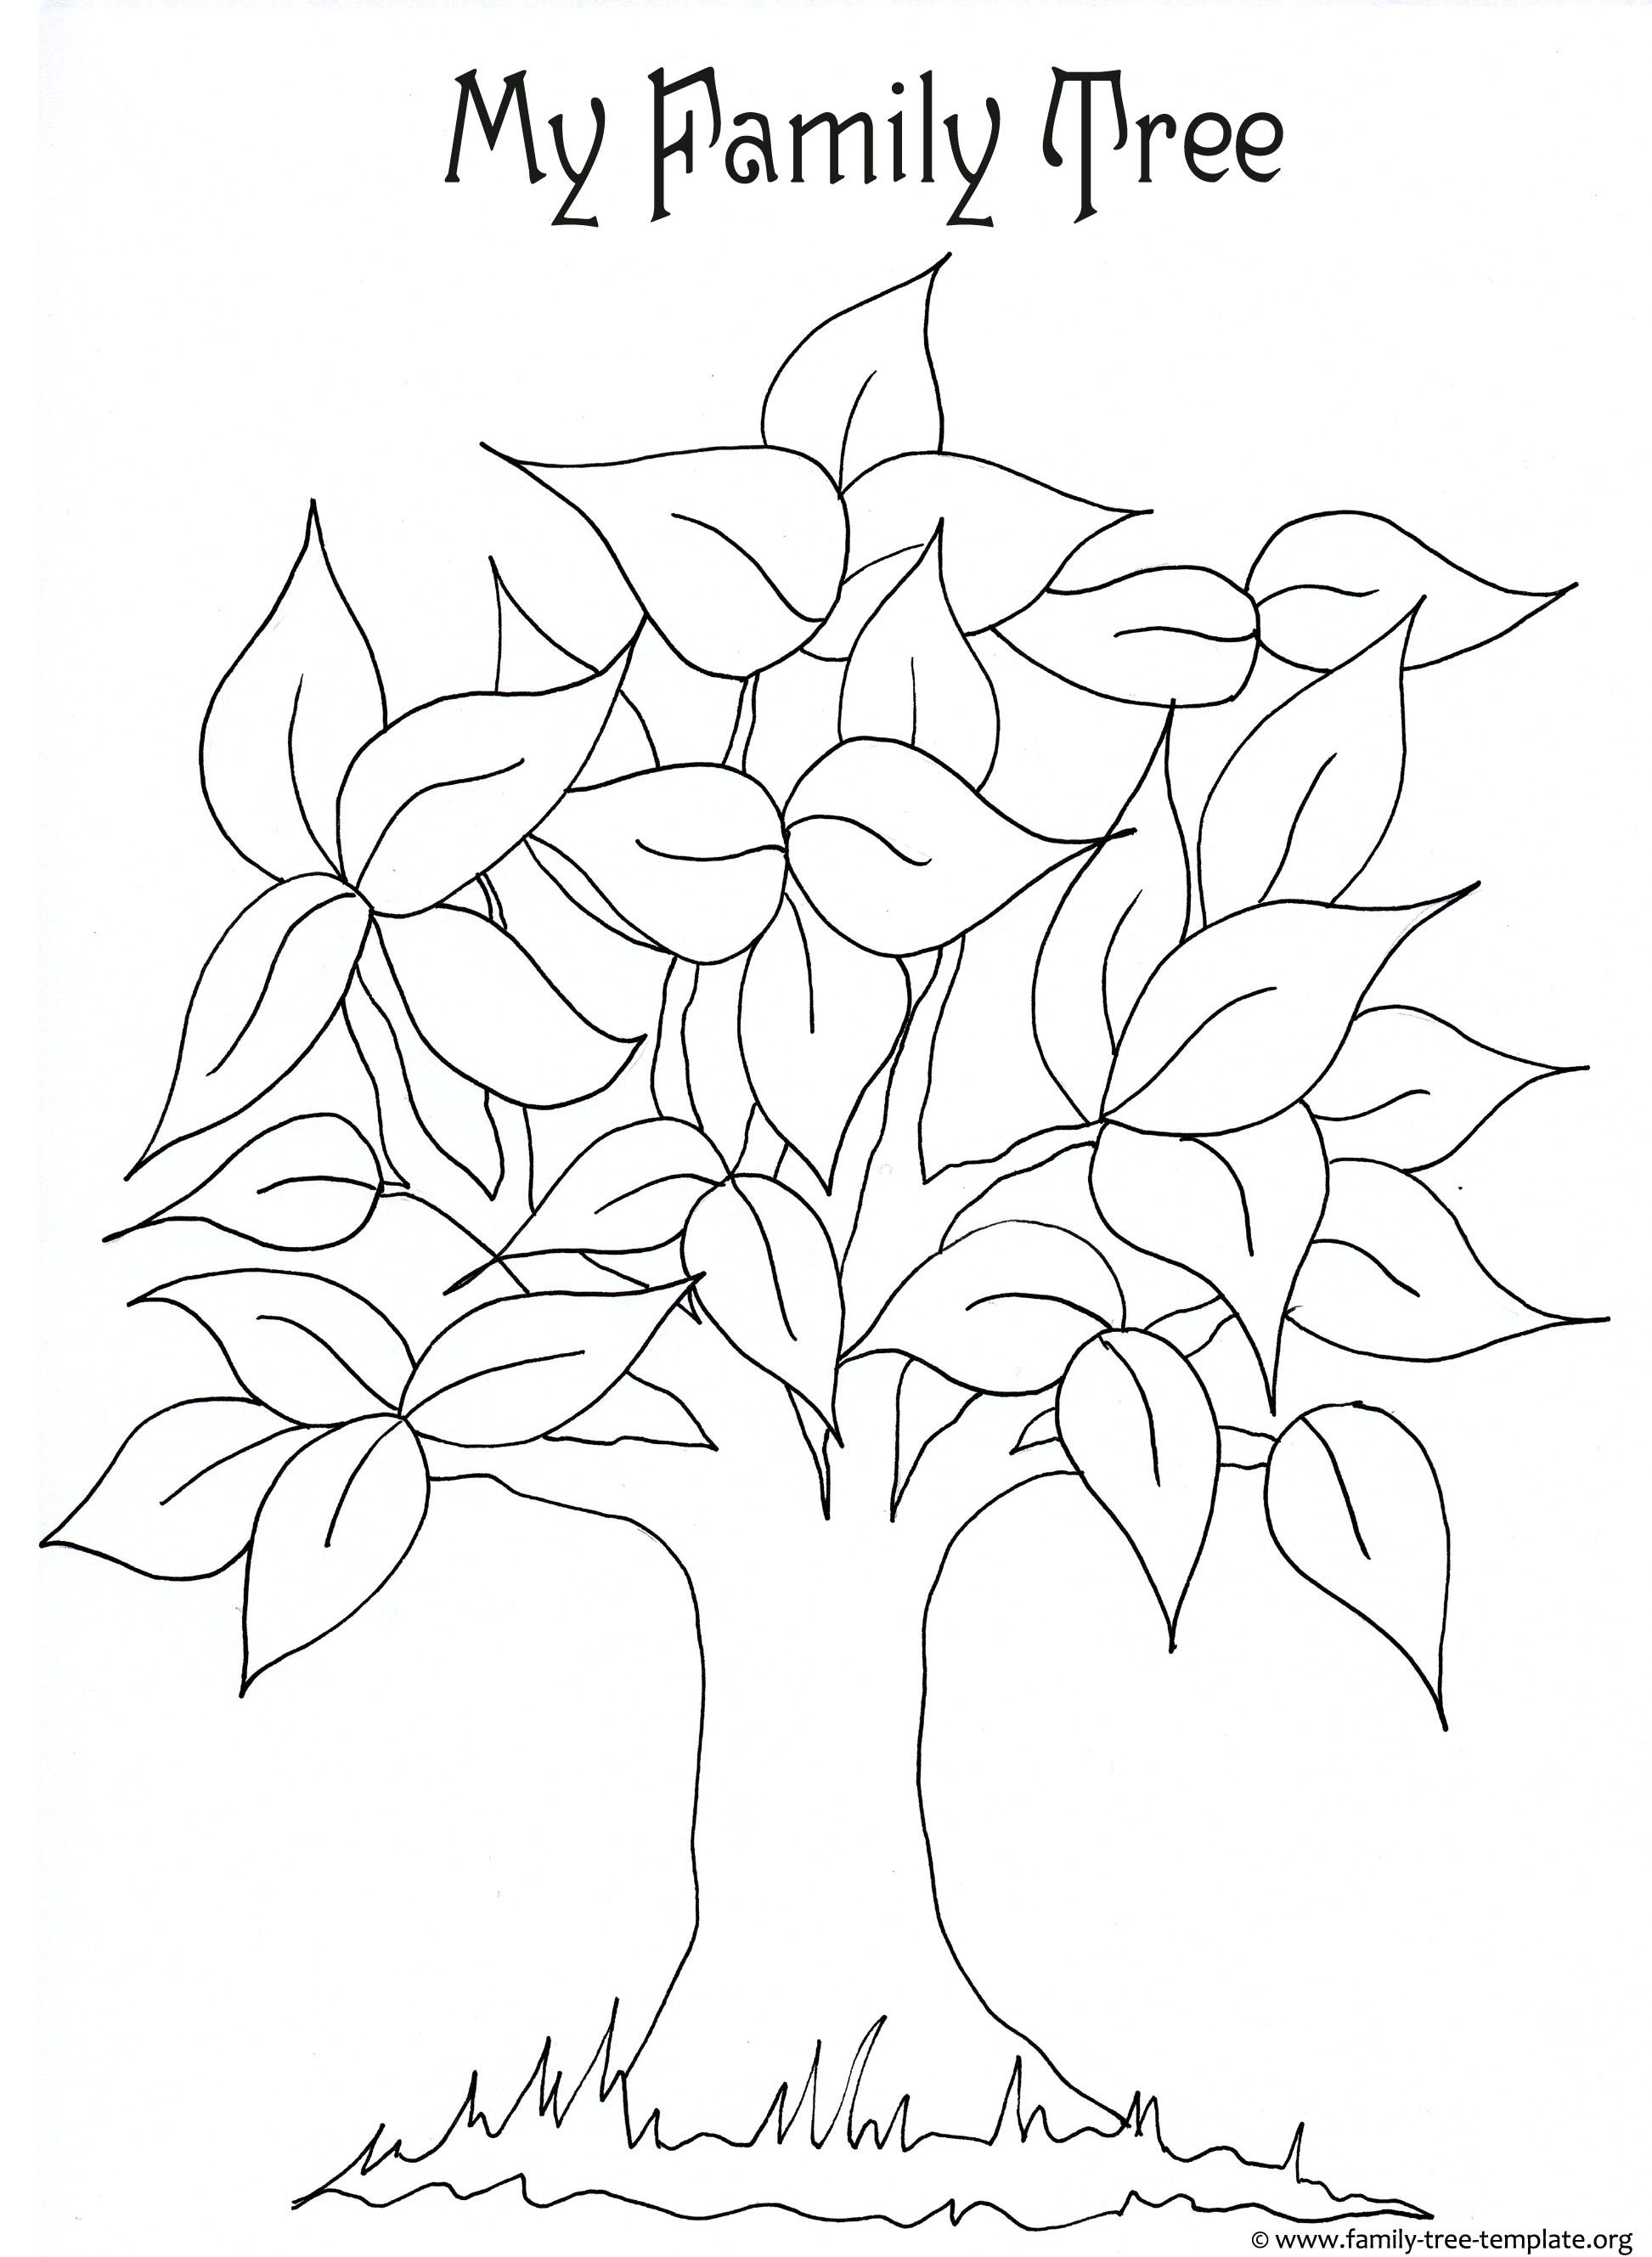 free printable coloring page for kids with leaves and tree trunk to color - Printable Coloring Pages Trees